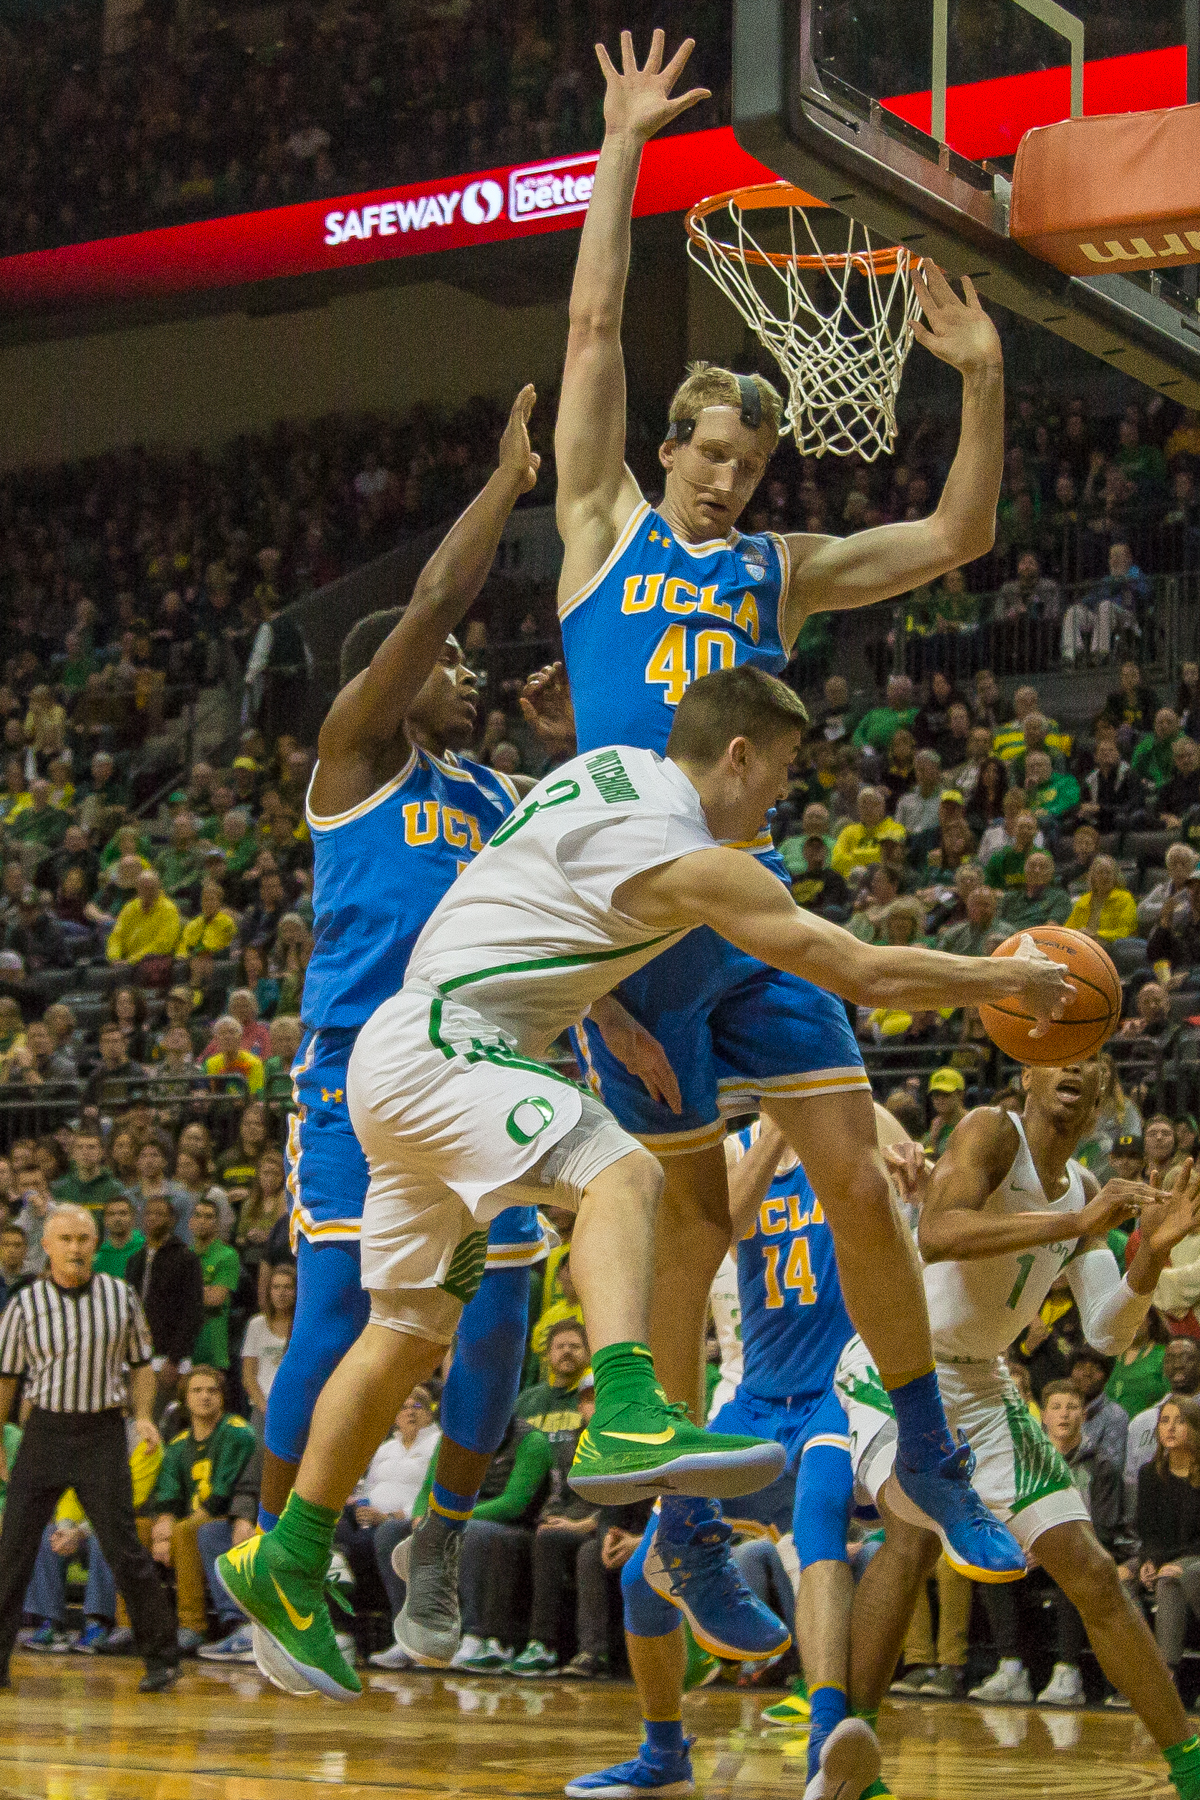 Oregon guard Payton Pritchard (#3) passes the ball around UCLA center Thomas Welsh (#40). The Oregon Ducks men's basketball team defeated the UCLA Bruins 94-91 Saturday night in front of a home crowd at Matthew Knight Arena. The win brings the Ducks 13-7 overall for the season and 3-4 in Pac-12 play. Photo by Dillon Vibes